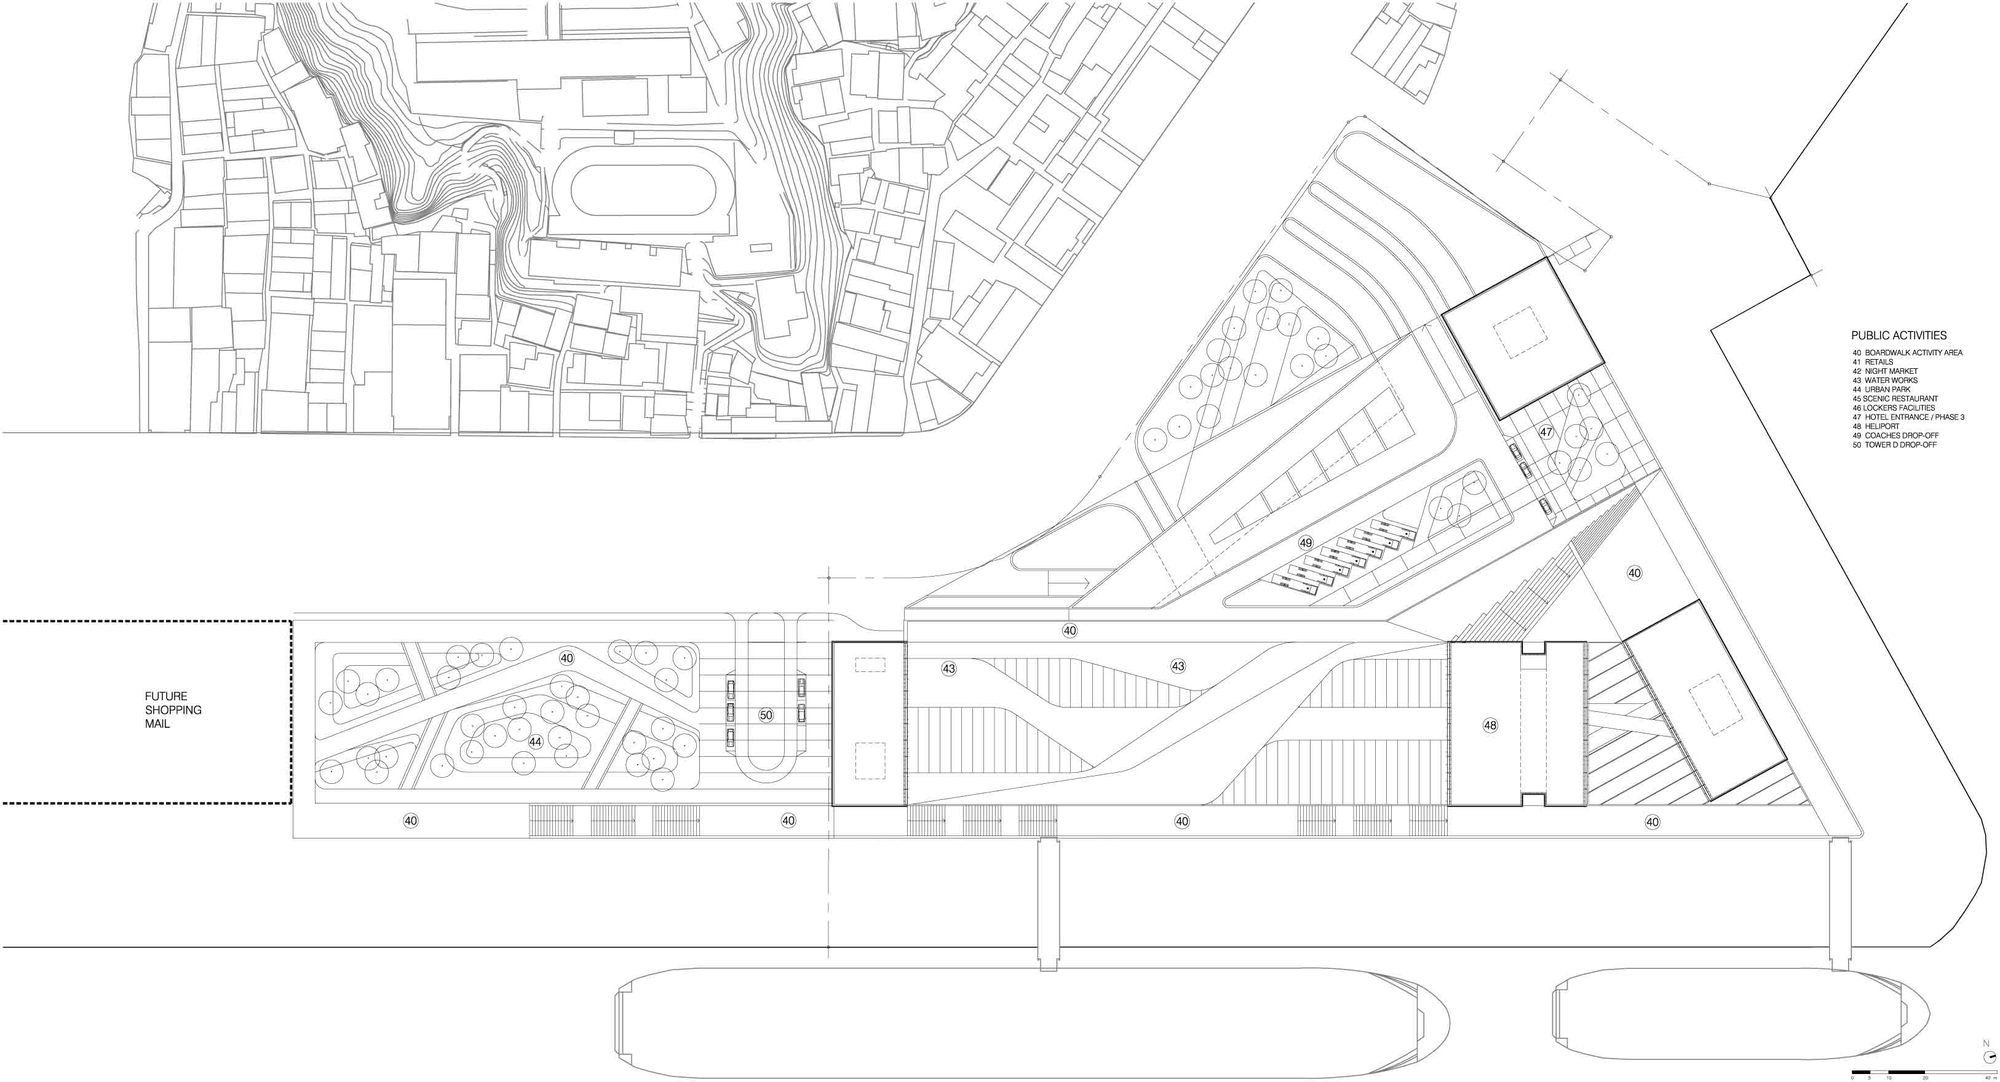 Gallery of Keelung New Harbor Service Building Competition